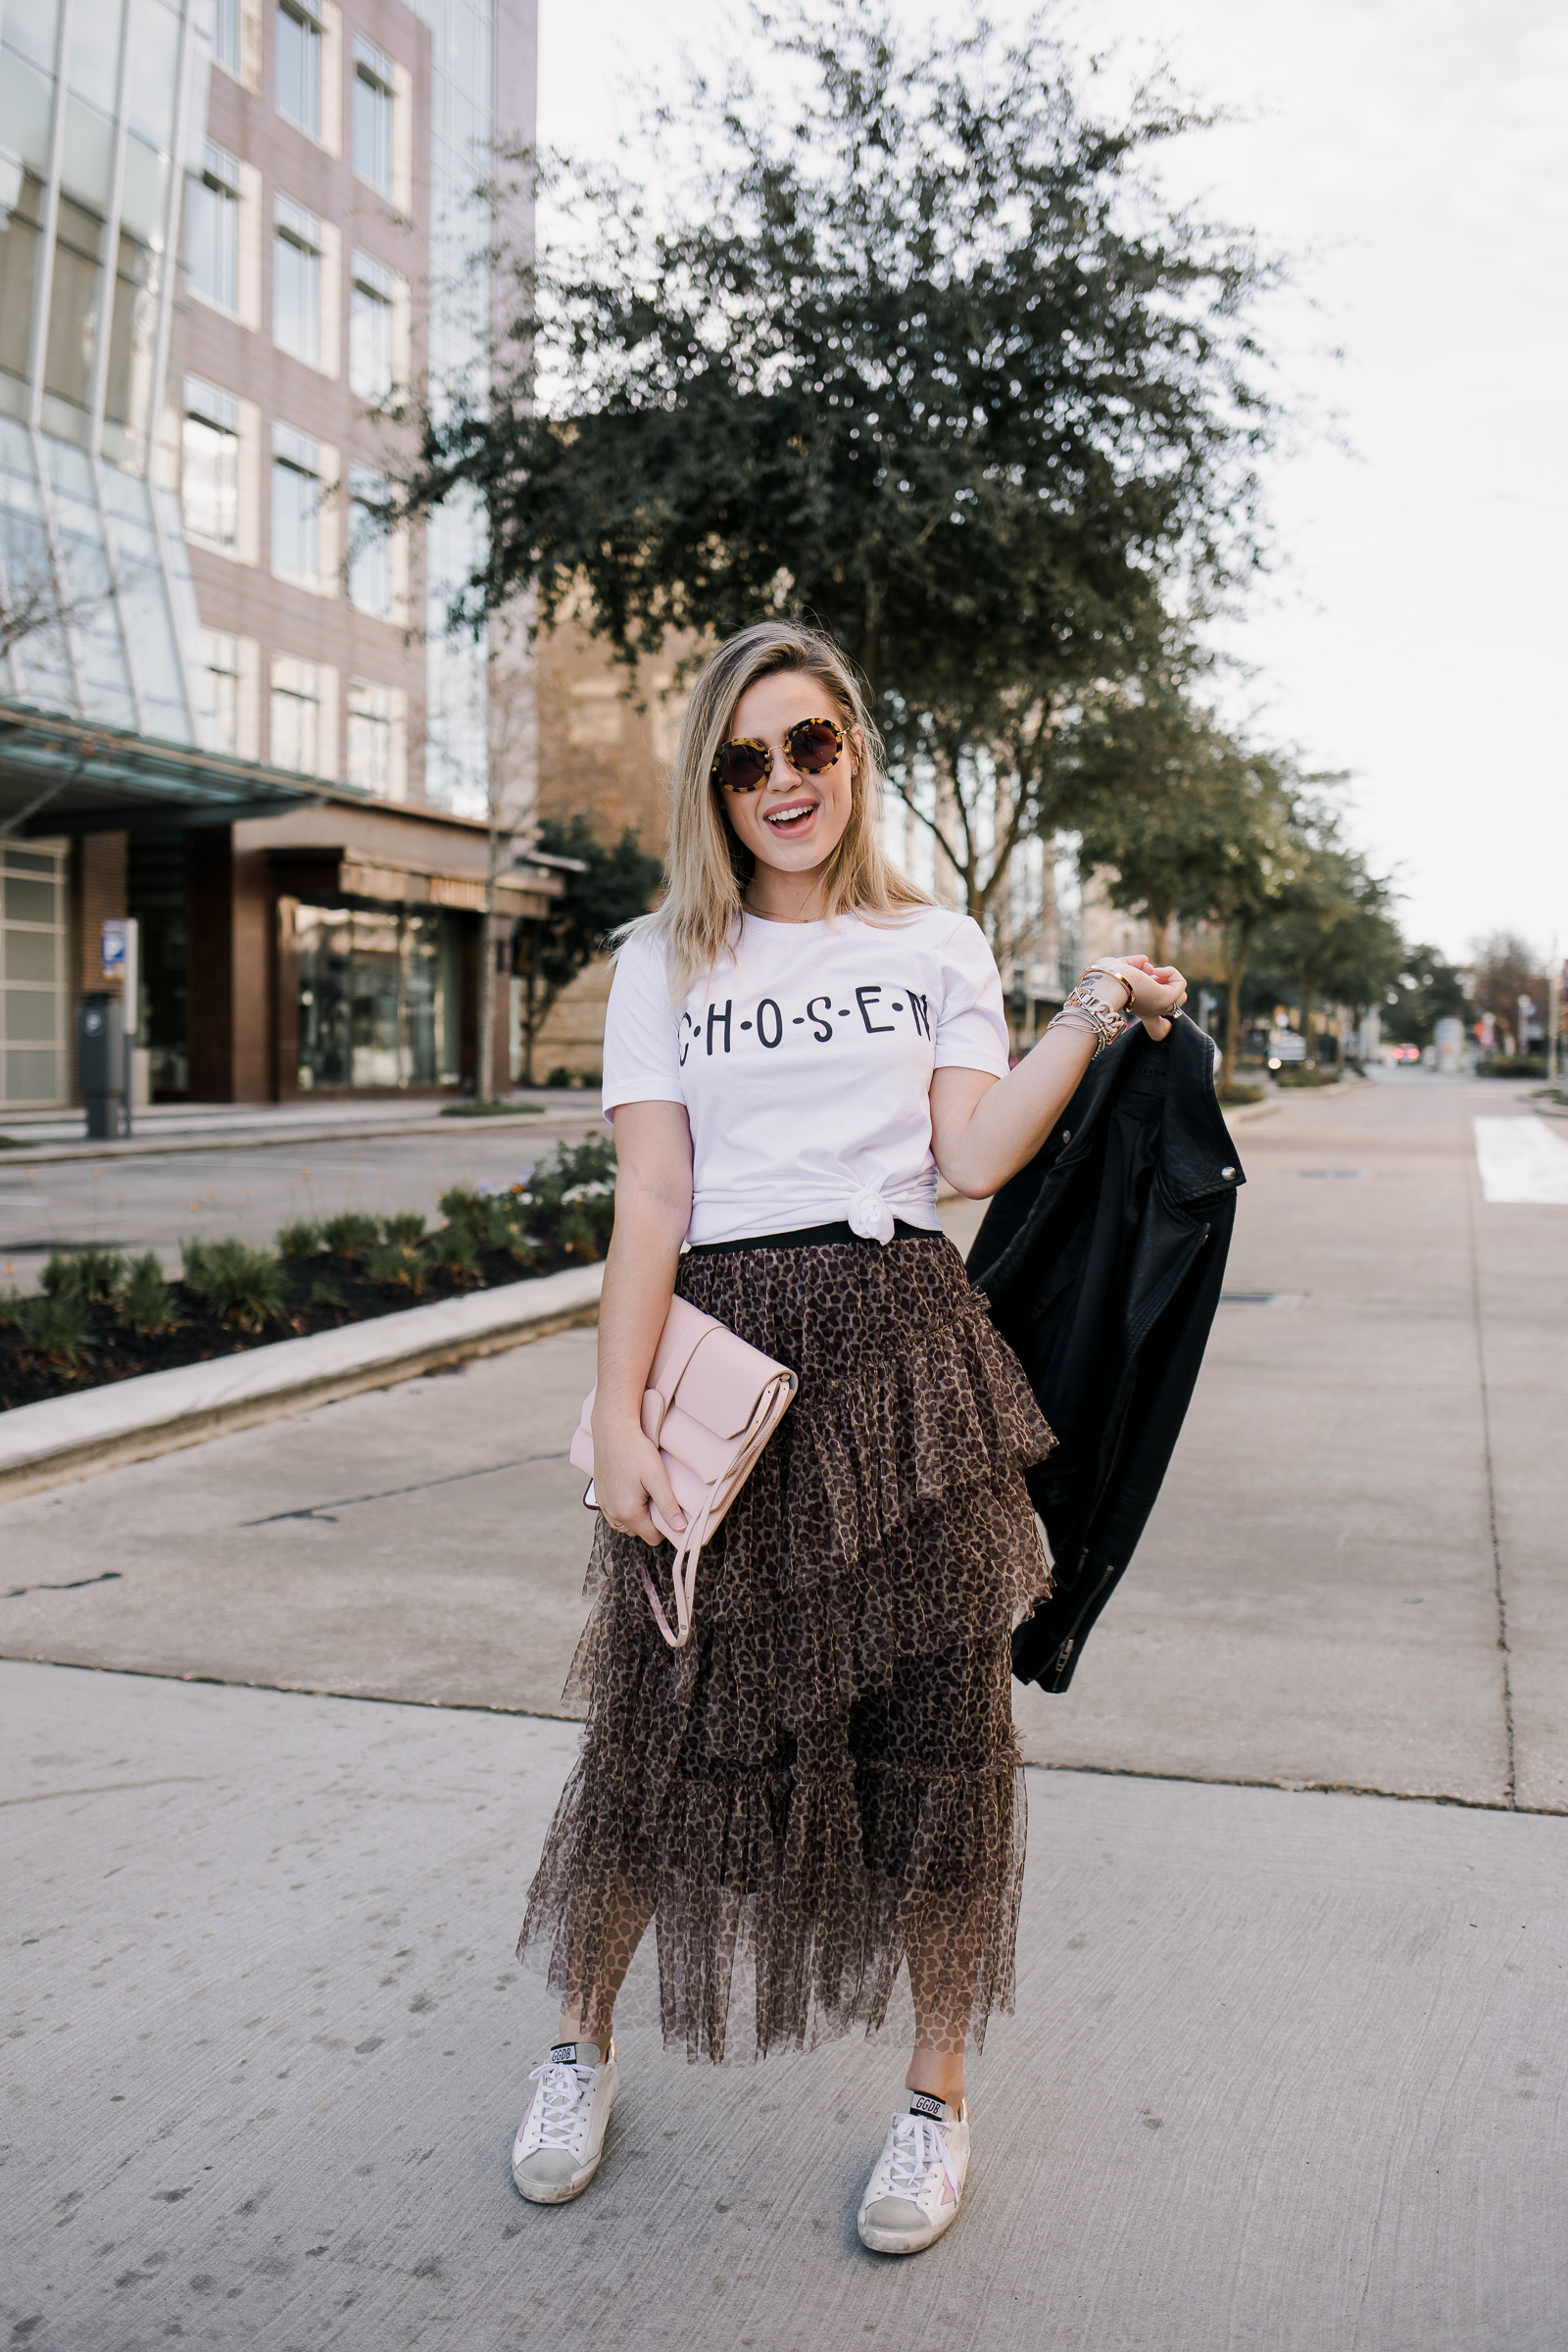 Houston fashion blogger Elly brown wears a ruffle midi skirt with a graphic tee